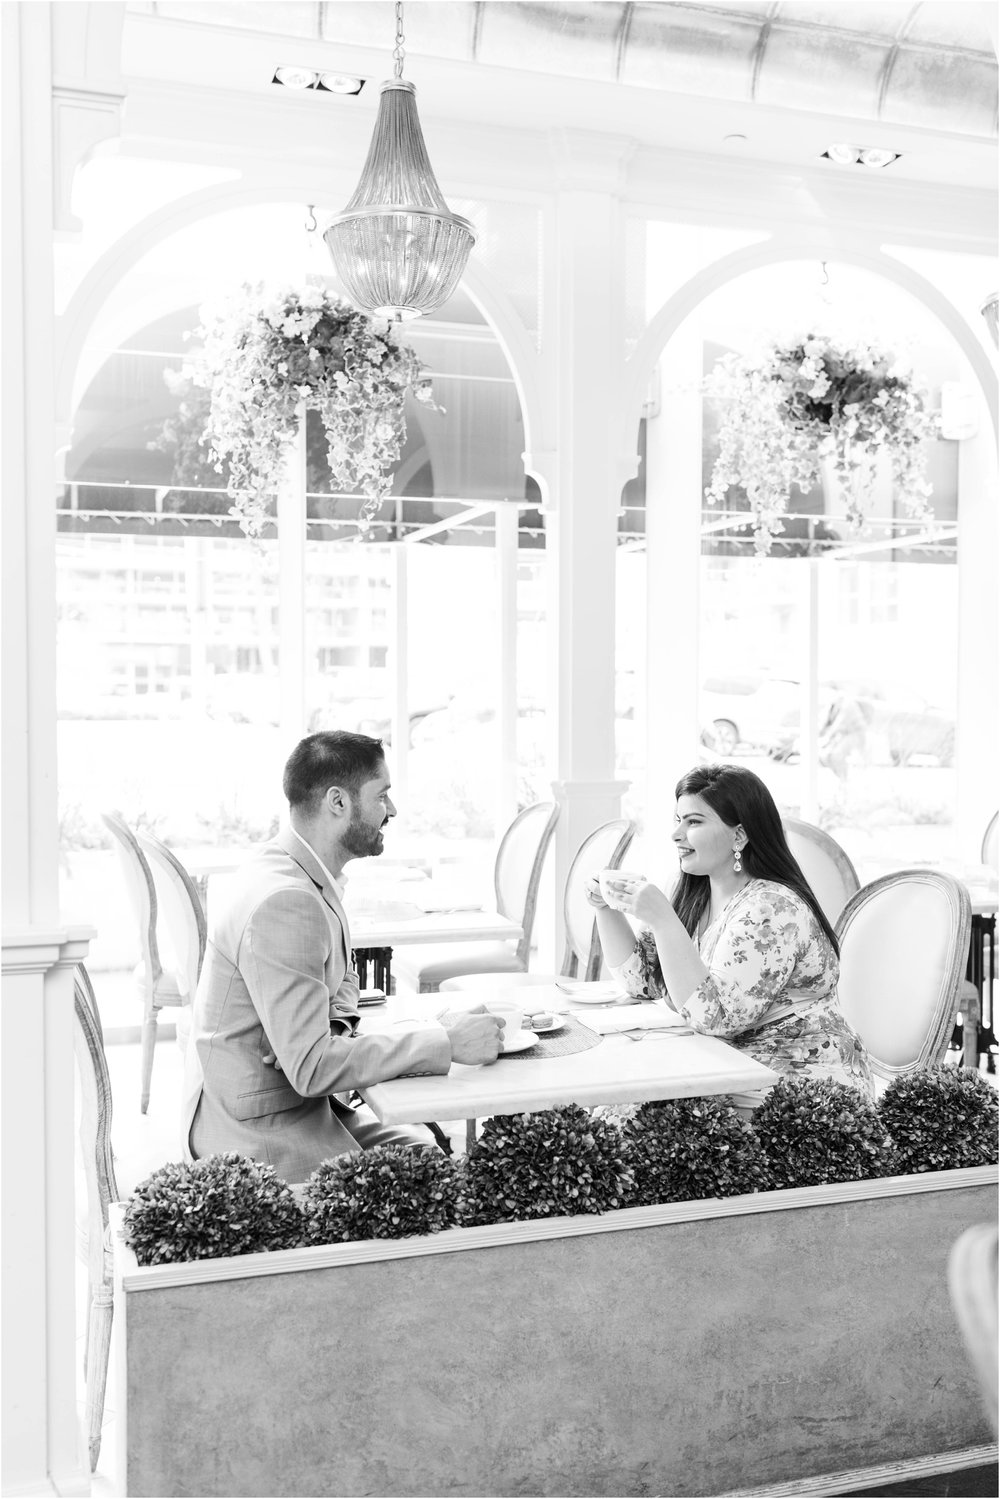 Colette-Grand-Cafe-Thompson-Hotel-Osgoode-Hall-Engagement-Session-Toronto-Mississauga-Brampton-Scarborough-GTA-Pakistani-Indian-Wedding-Engagement-Photographer-Photography_0016.jpg